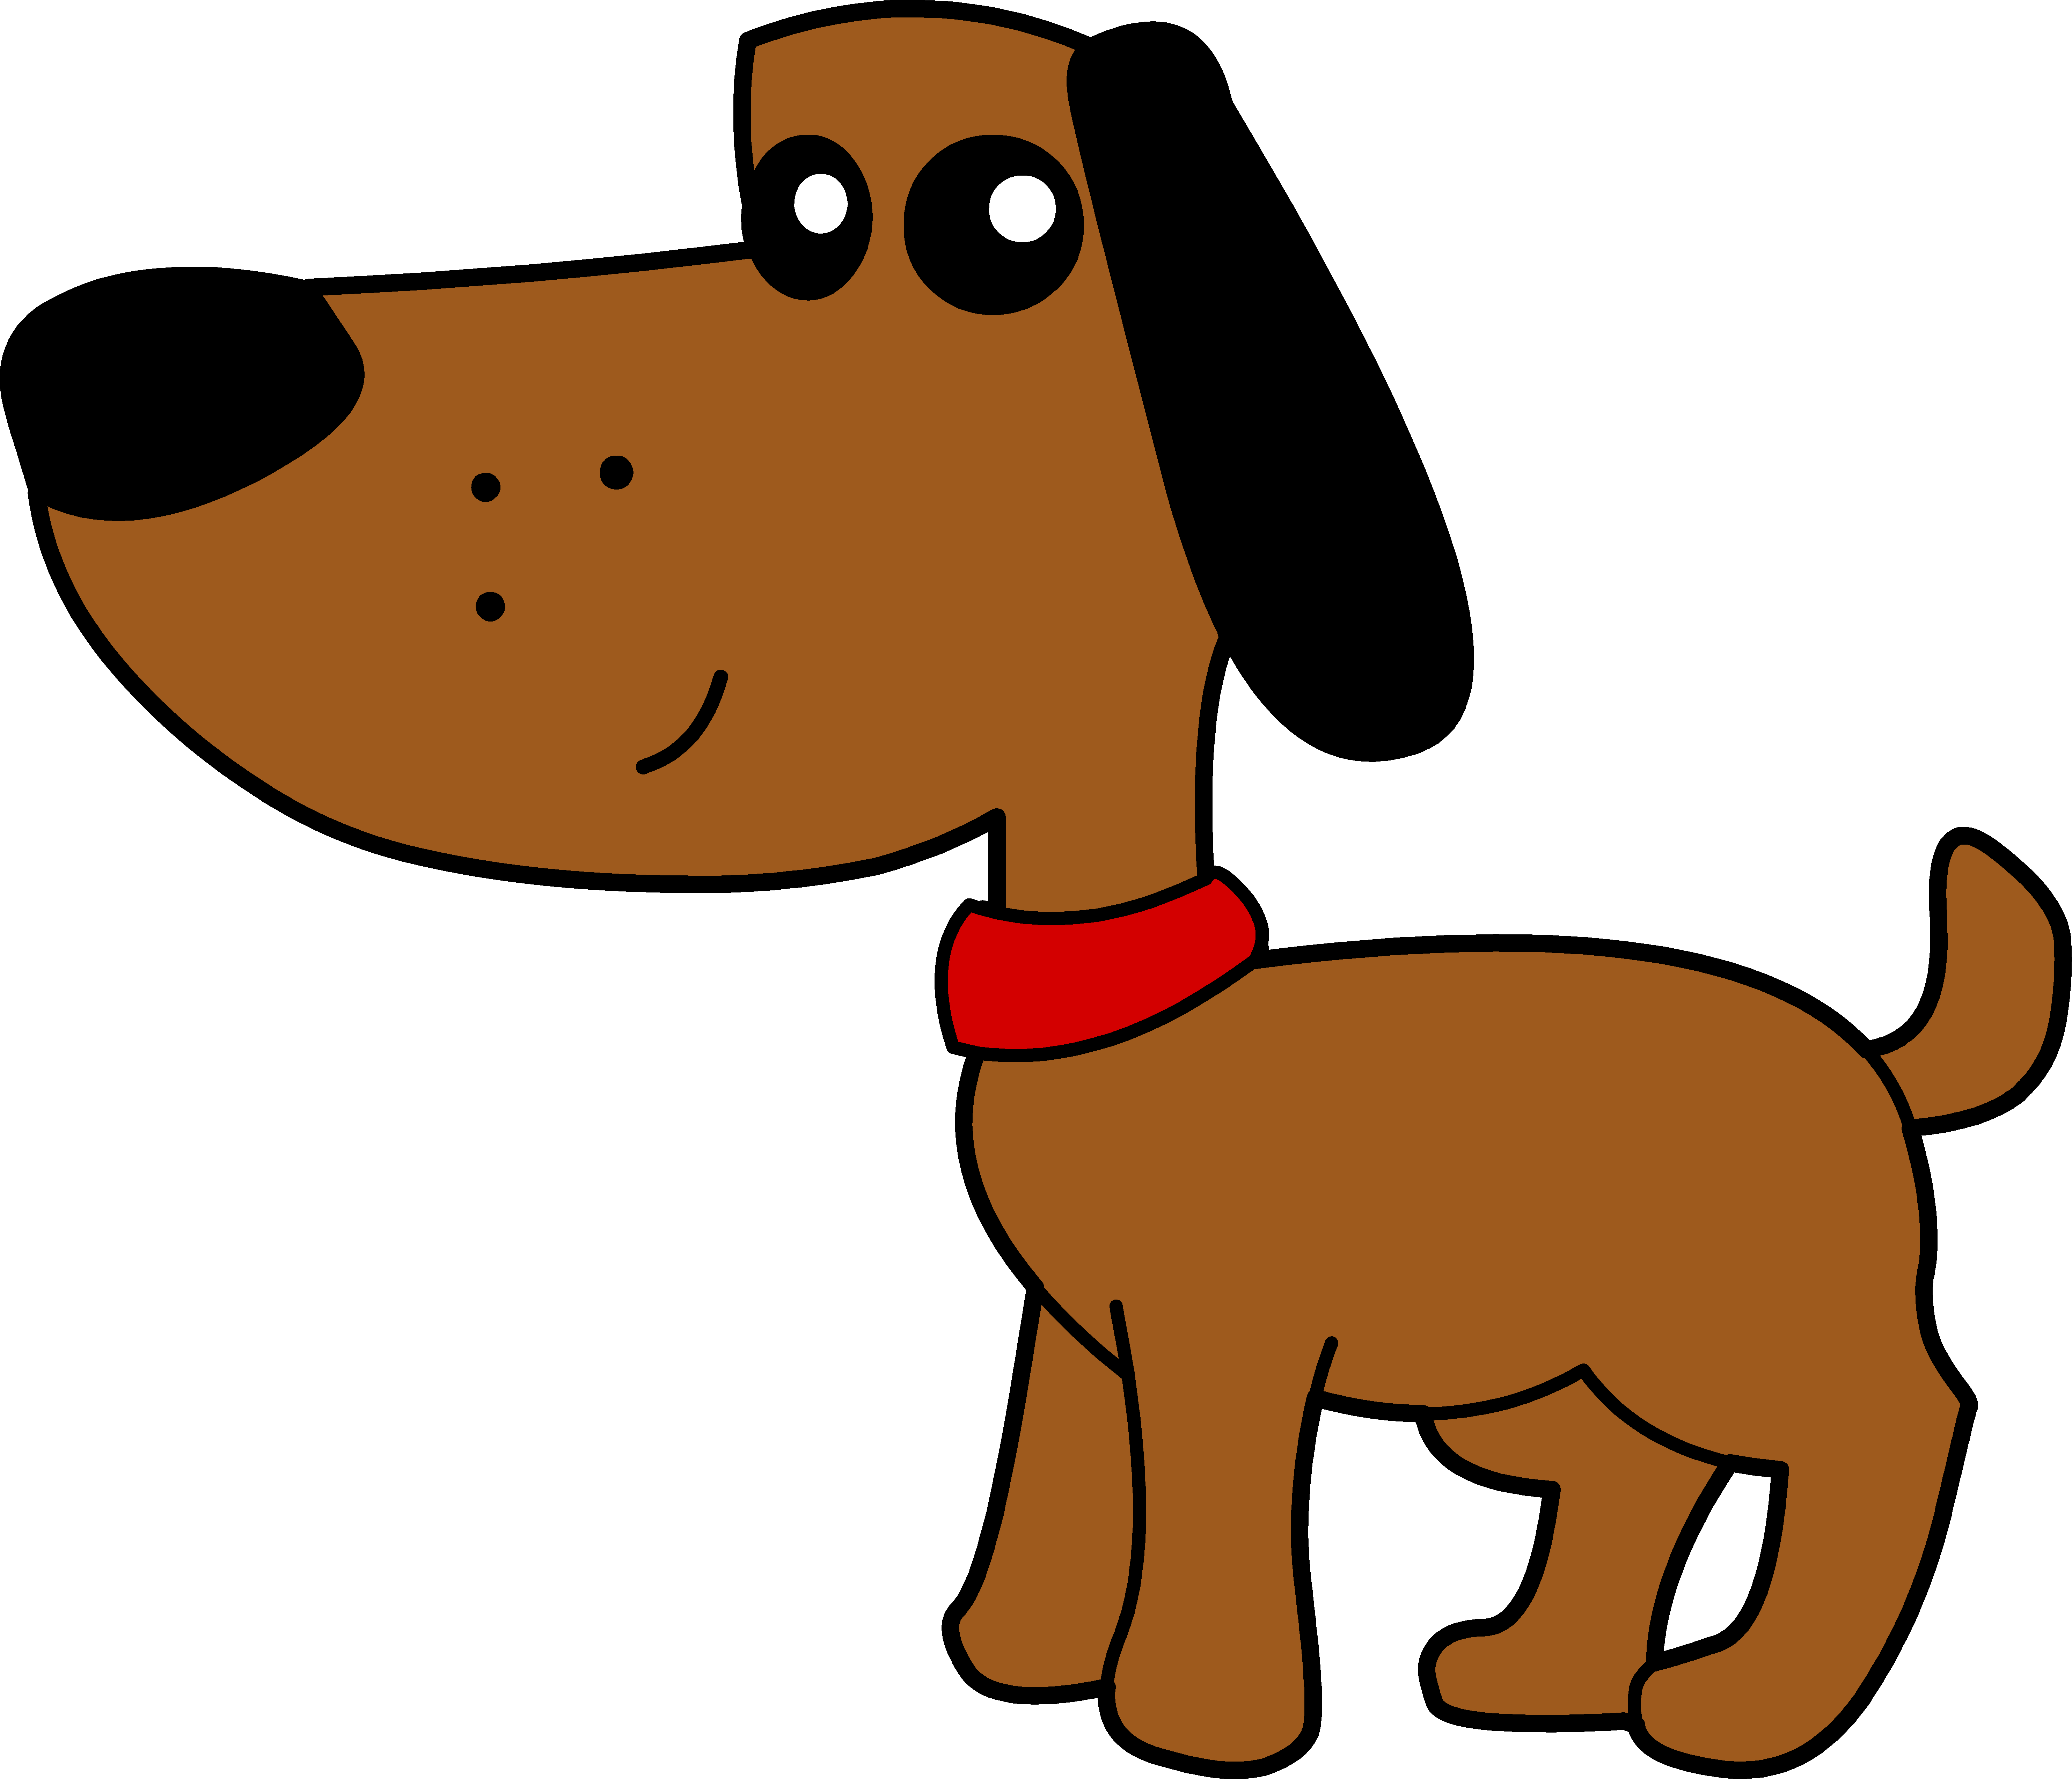 clipart dogs .-clipart dogs .-3